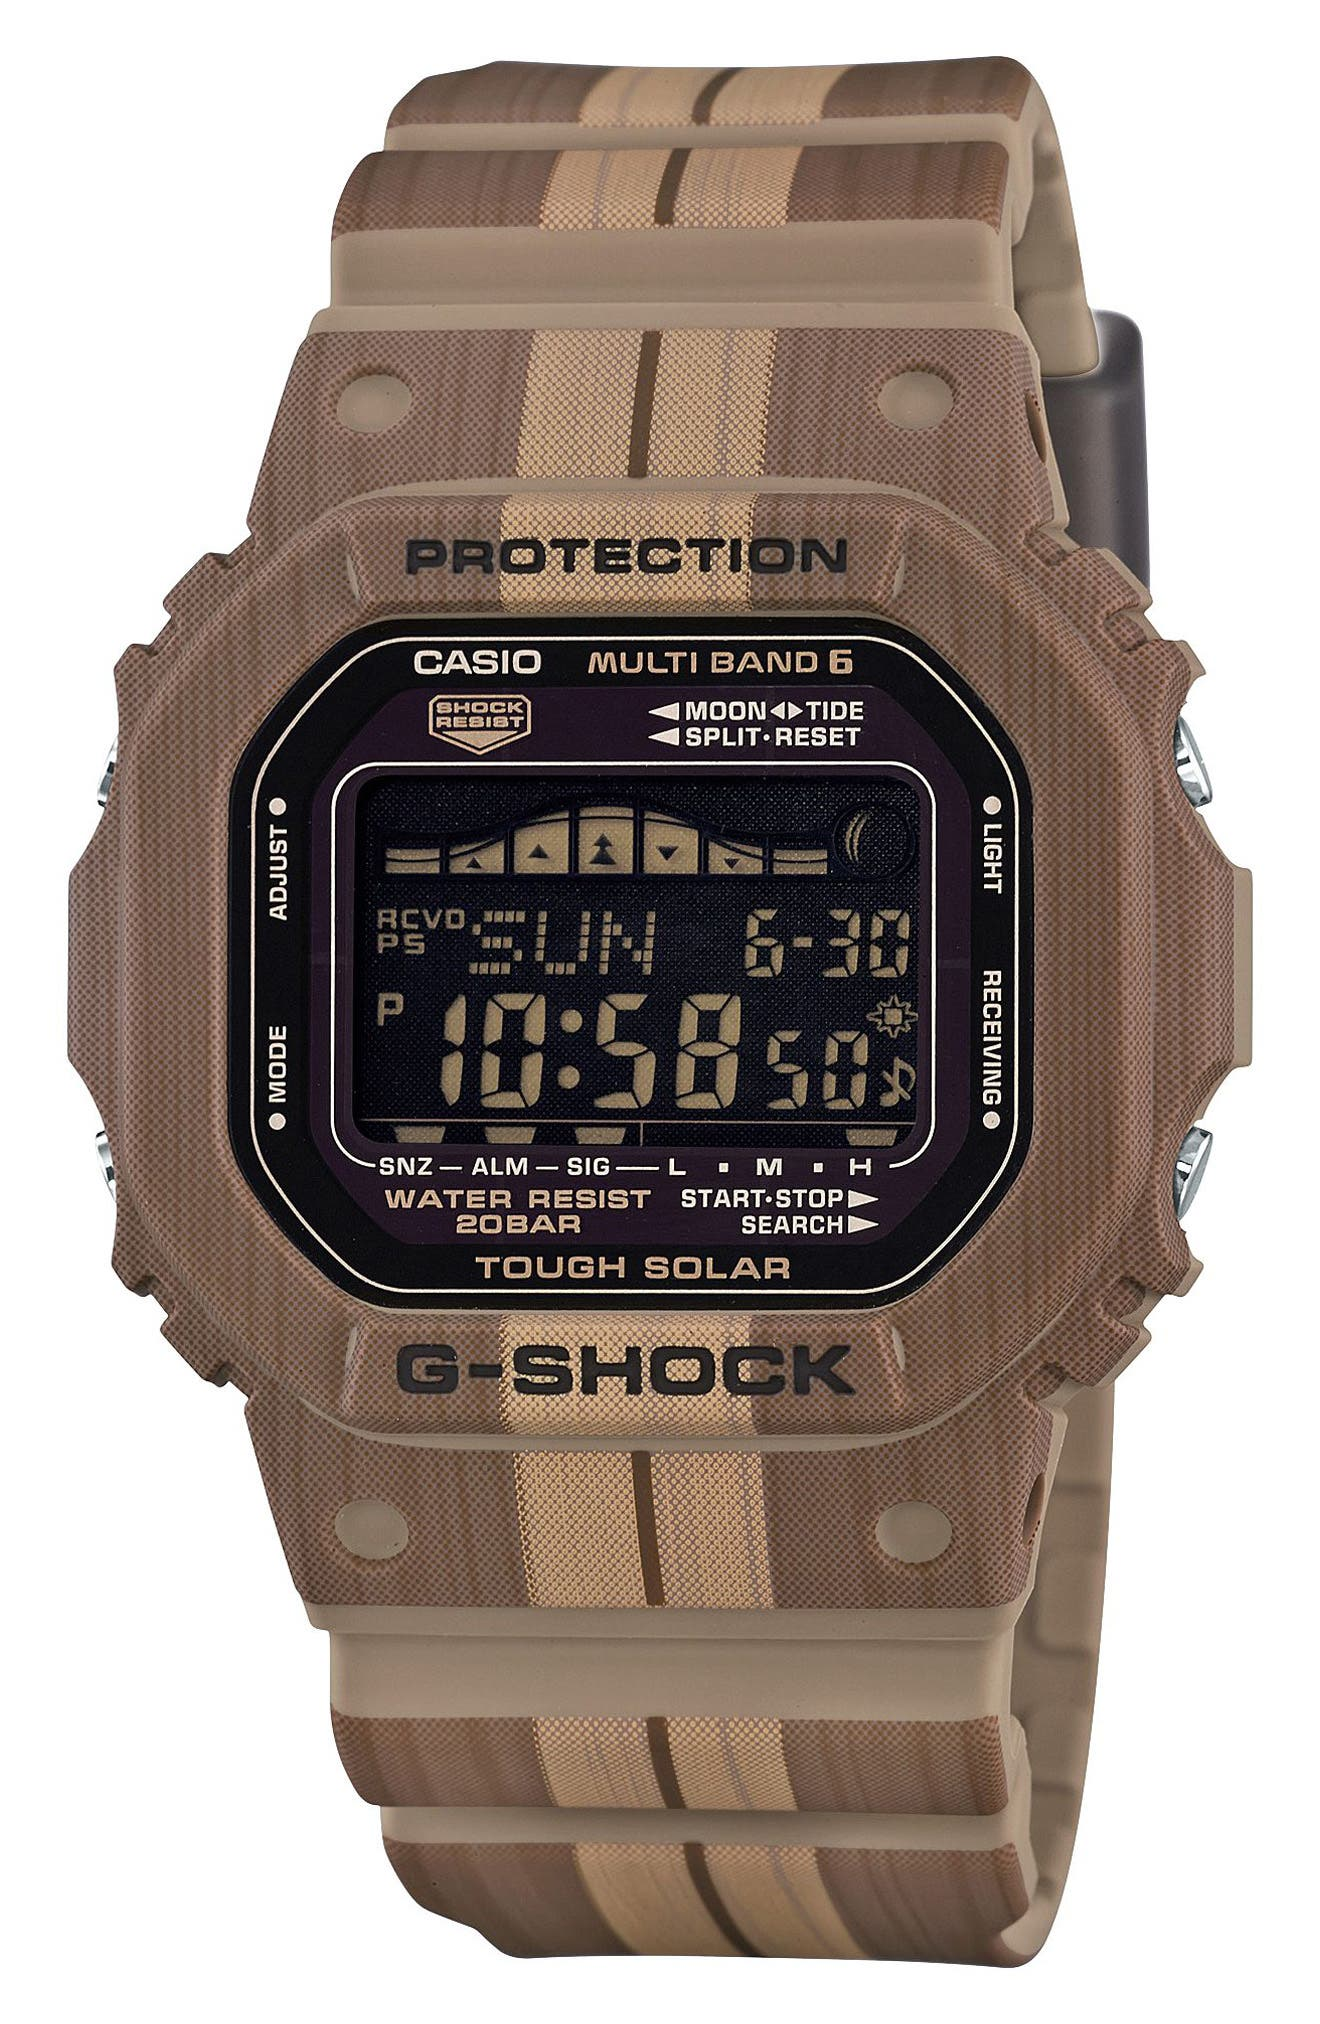 G-SHOCK BABY-G G-Shock Digital Solar Tide Graphic Watch, 42mm